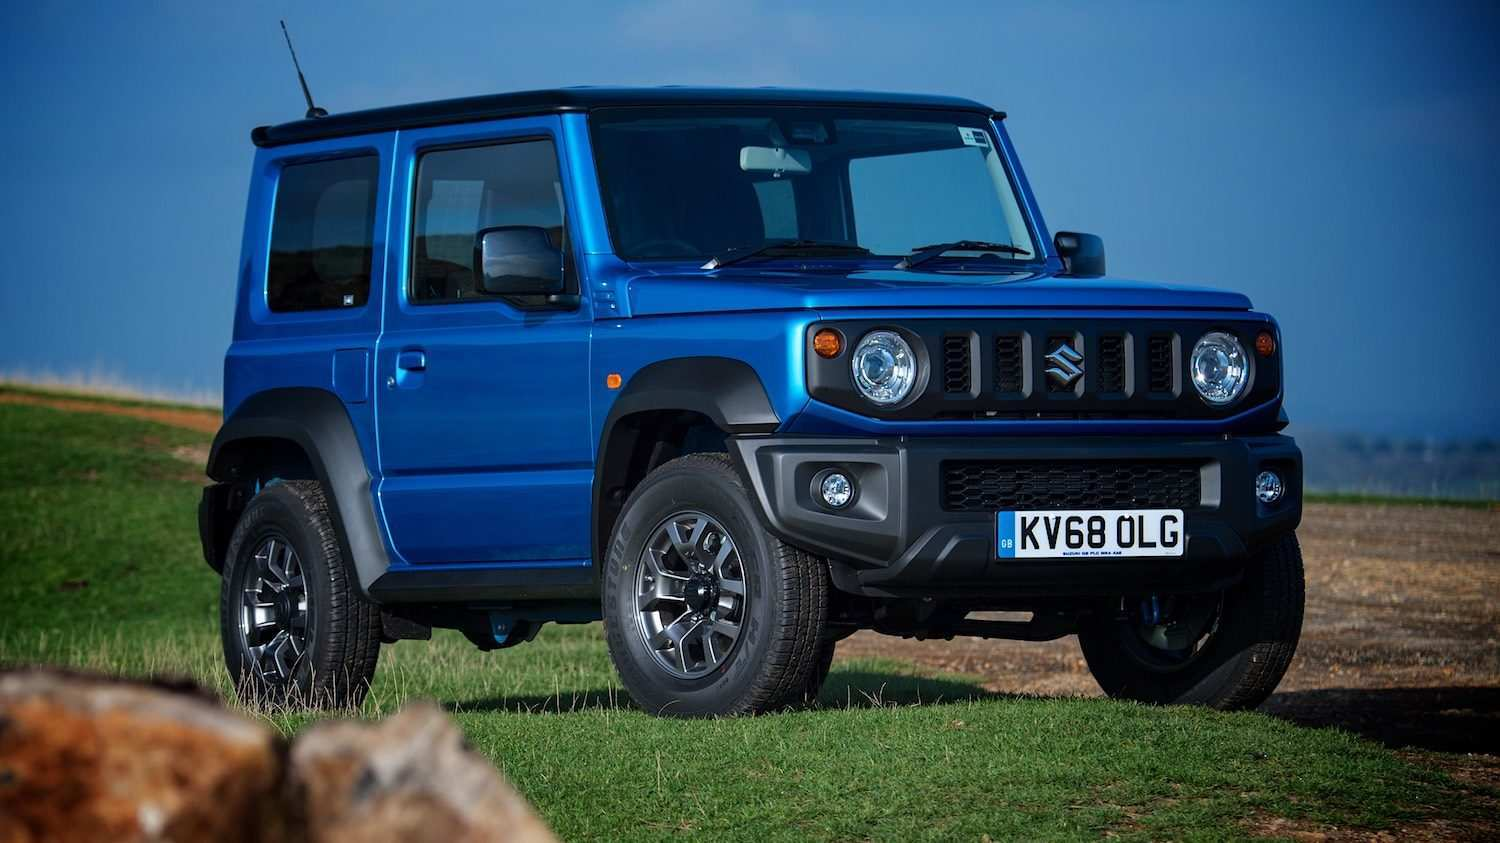 76 Great New Blue Jeep 2019 Review Images with New Blue Jeep 2019 Review